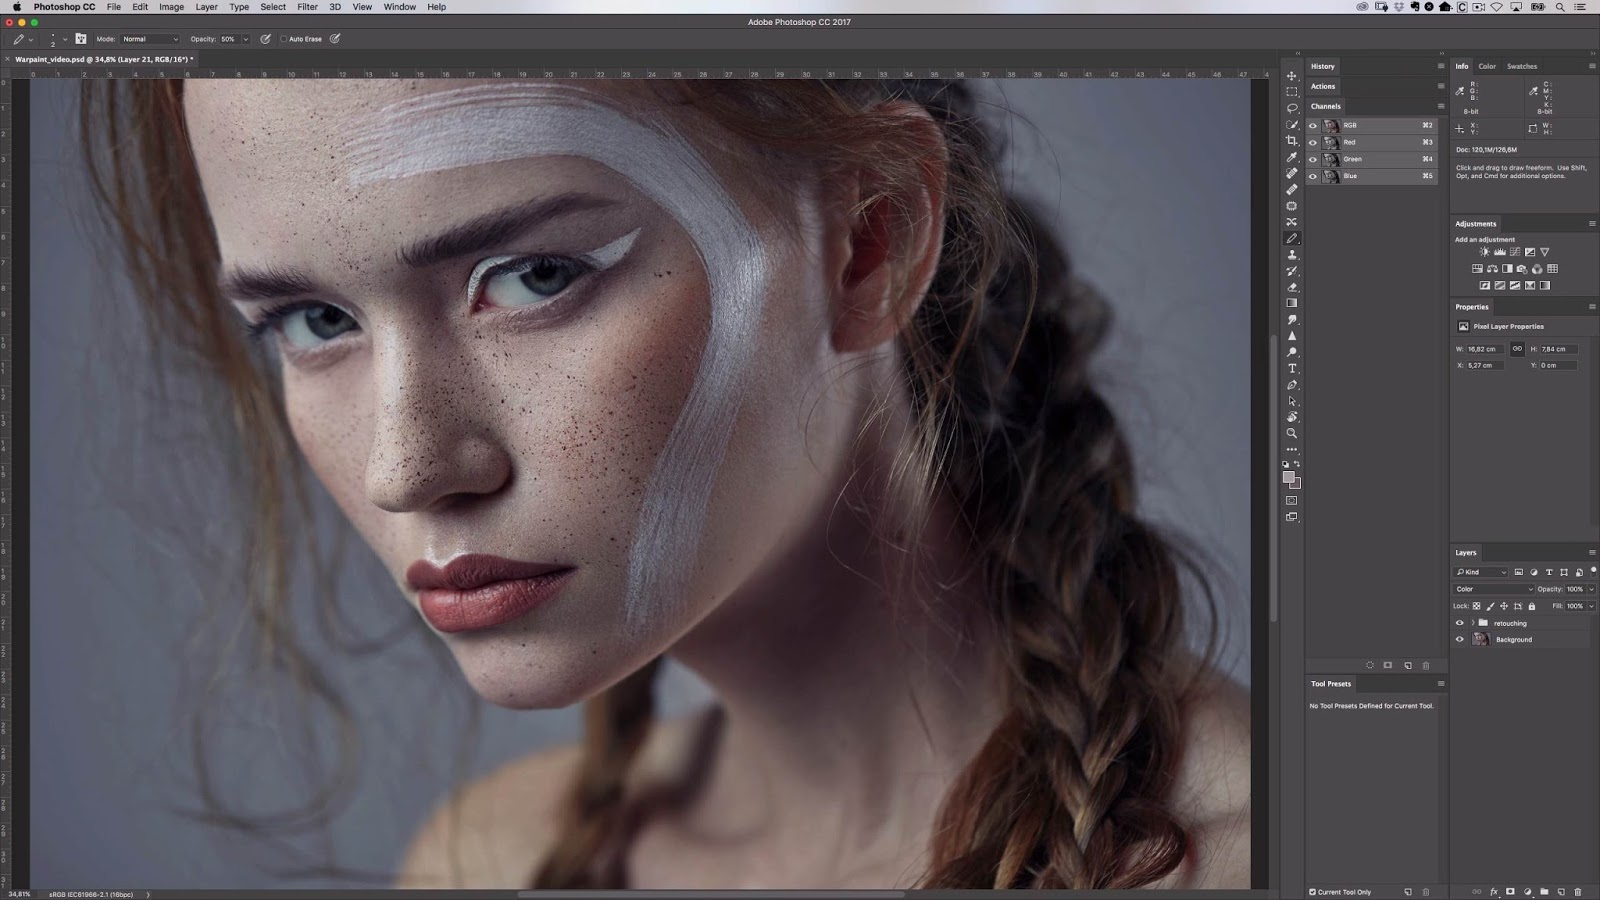 Photoshop - How to Clean Skin with the Clone Stamp Tool